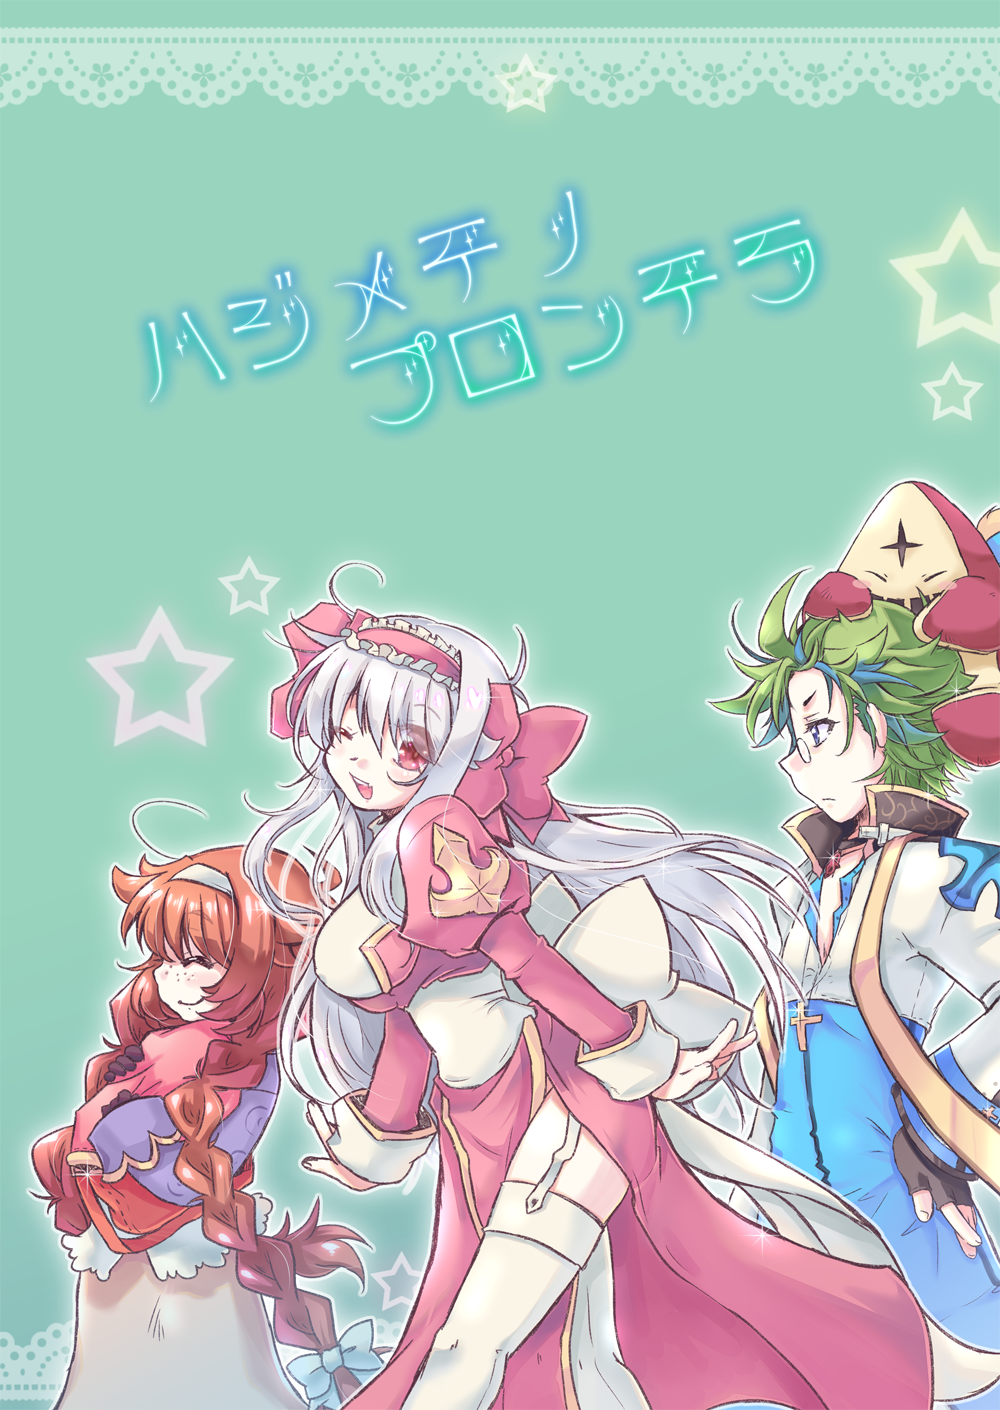 1boy 2girls arch_bishop_(ragnarok_online) bag bangs black_gloves blue_coat blue_eyes blue_jacket blush bow braid breasts brown_hair brown_skirt choker closed_eyes closed_mouth coat comiket_97 commentary_request cover cover_page cropped_jacket cross cross_necklace doujin_cover dress eyebrows_visible_through_hair feet_out_of_frame fingerless_gloves frilled_hairband frills garter_straps gloves green_hair hair_between_eyes hair_bow hairband hand_on_hip high_priest_(ragnarok_online) highres holding holding_bag jacket jewelry juliet_sleeves large_breasts long_hair long_sleeves looking_afar looking_at_viewer looking_to_the_side merchant_(ragnarok_online) multiple_girls necklace open_mouth pince-nez puffy_sleeves ragnarok_online red_bow red_dress red_eruma red_eyes red_hairband sash short_hair skirt smile star_(symbol) starfish tanono thigh-highs twin_braids twintails two-tone_dress white_bow white_dress white_hair white_jacket white_legwear white_sash